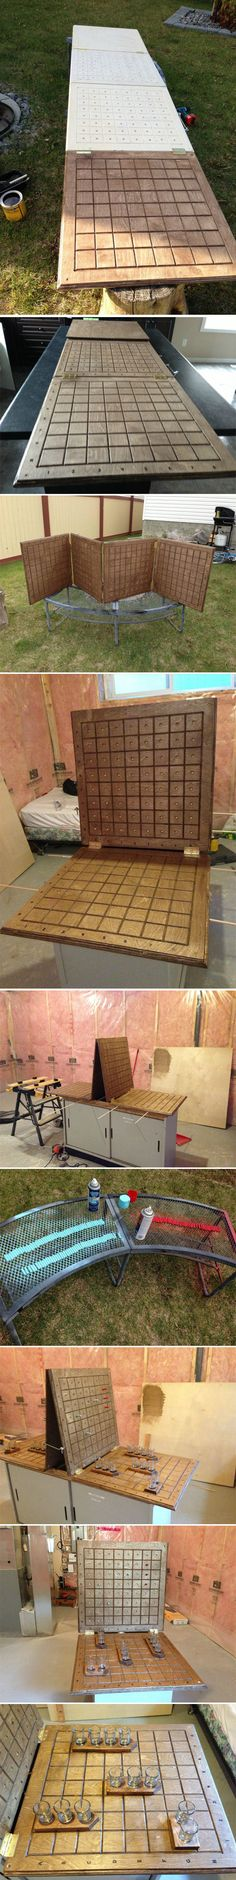 Homemade Battleshots…I feel like all my carpentry projects have been leading up to this moment.